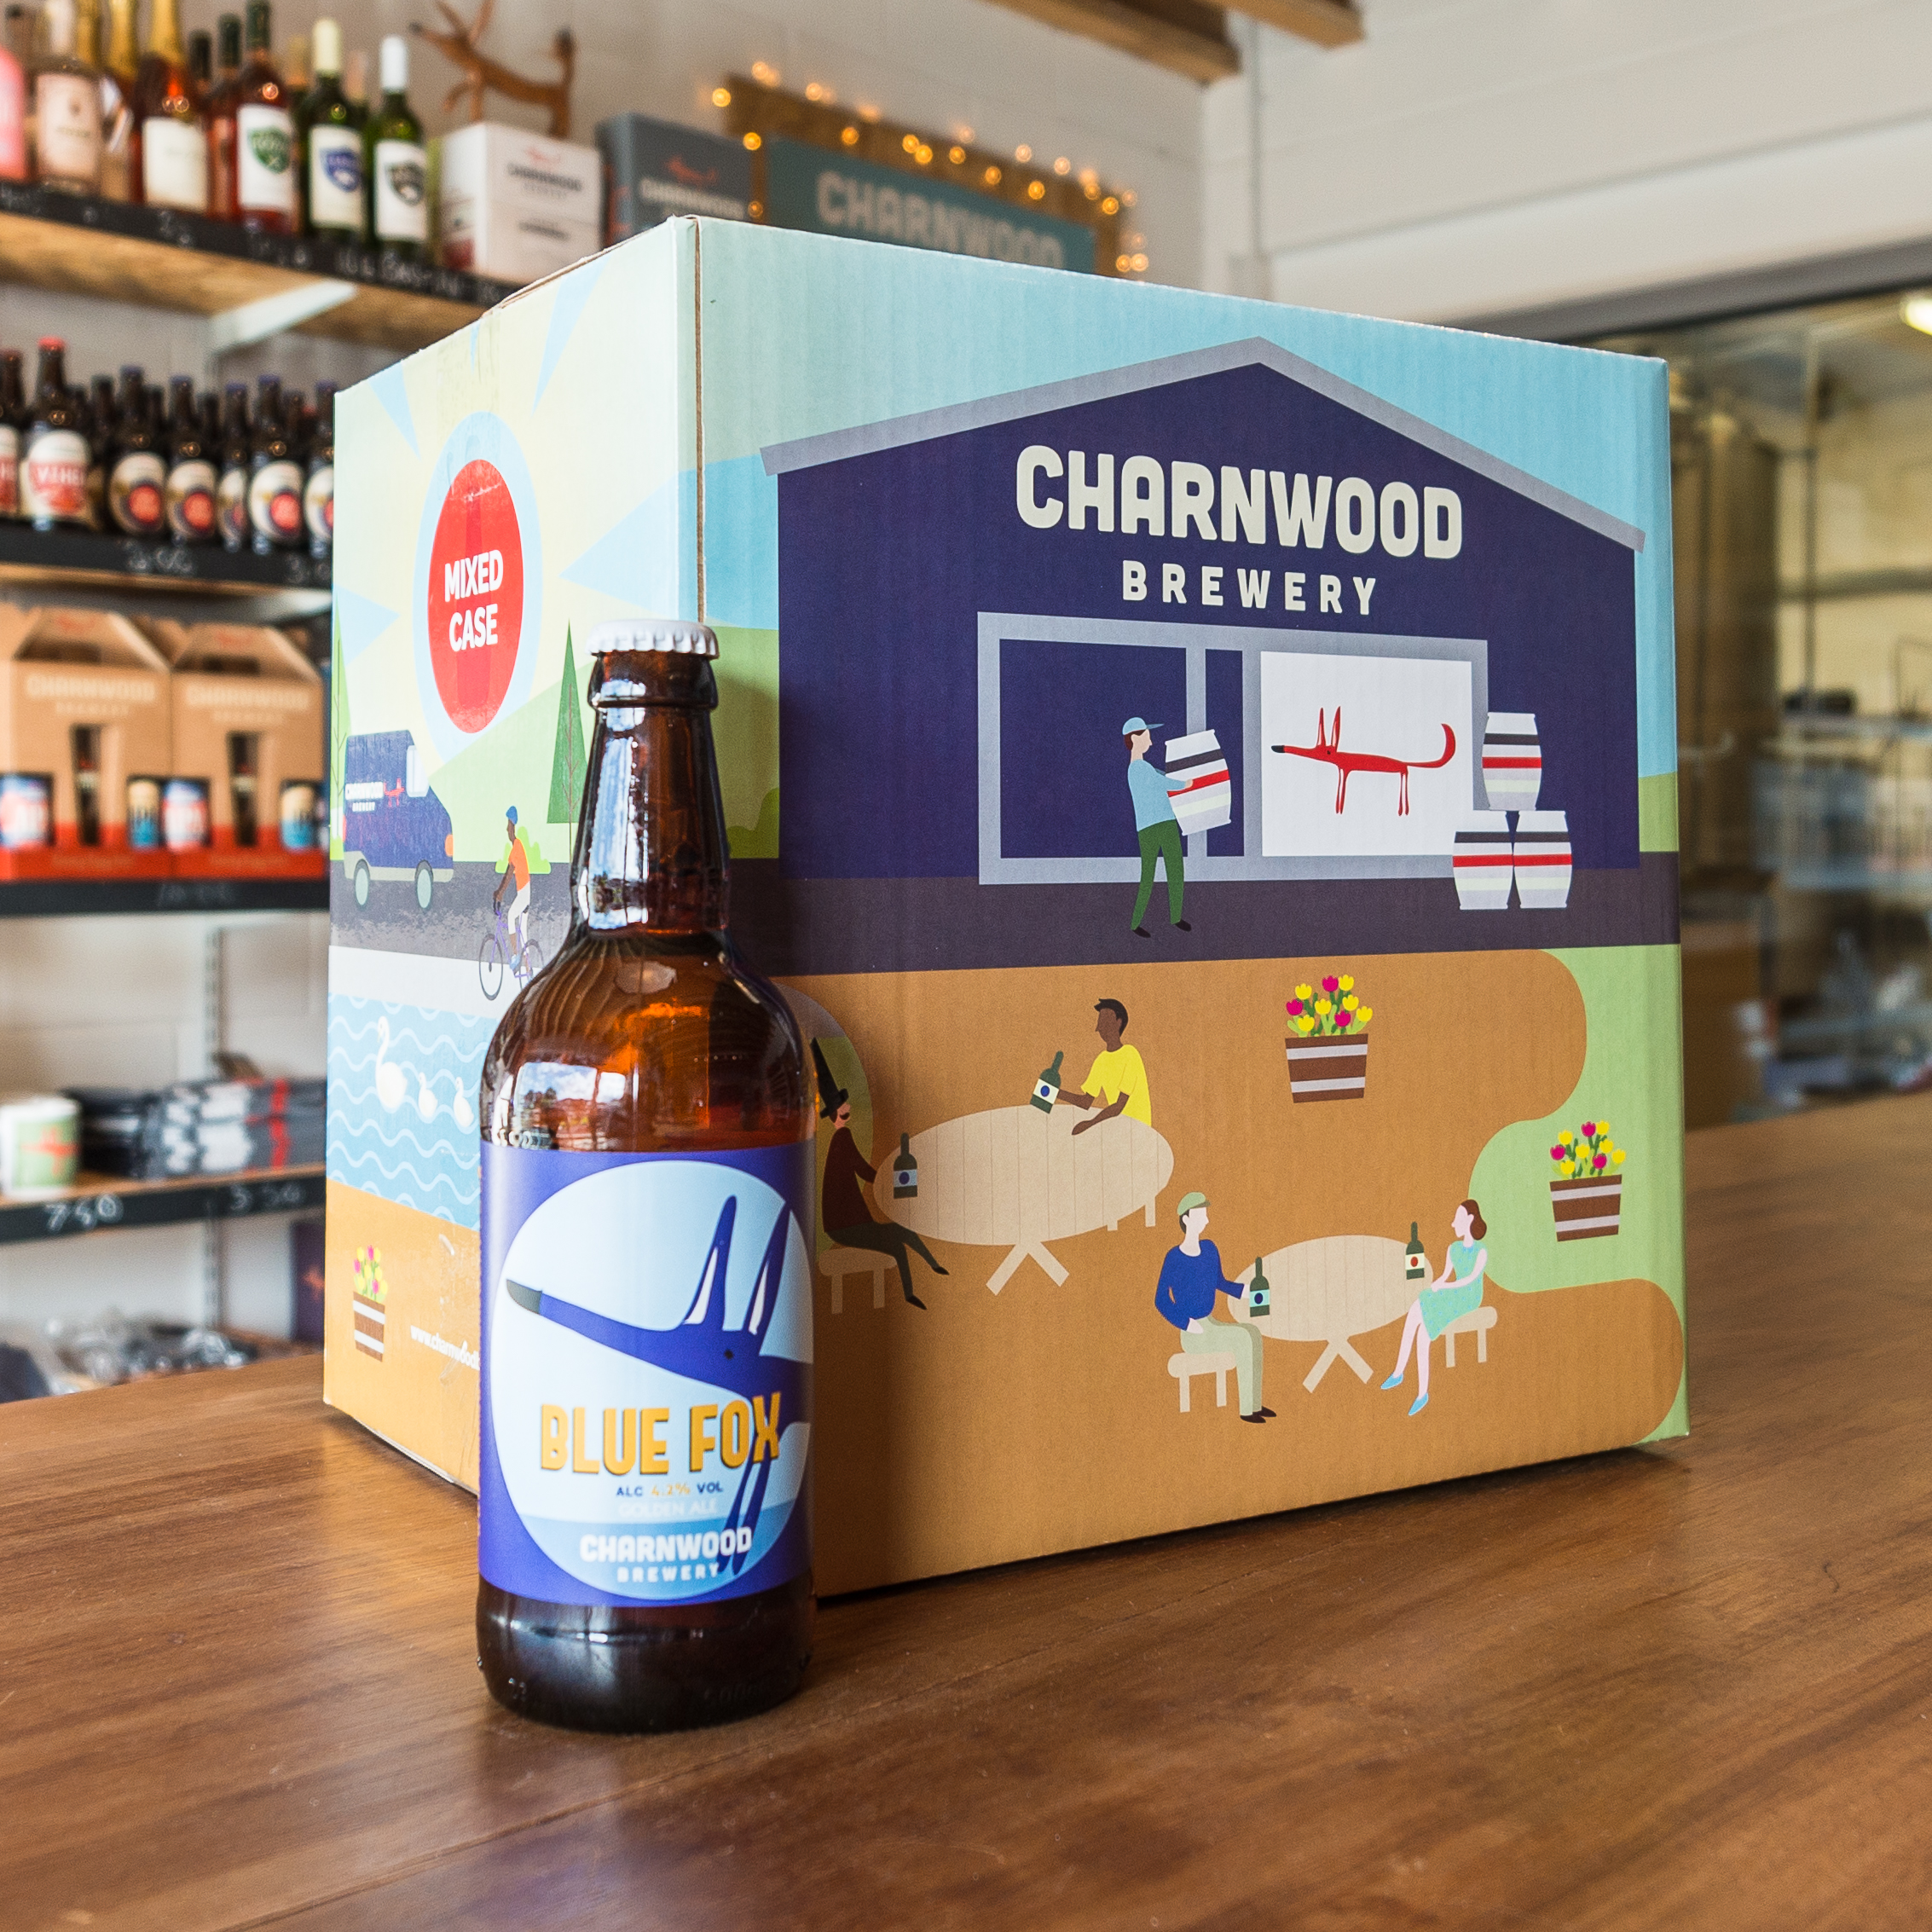 Blue Fox case from Charnwood Brewery